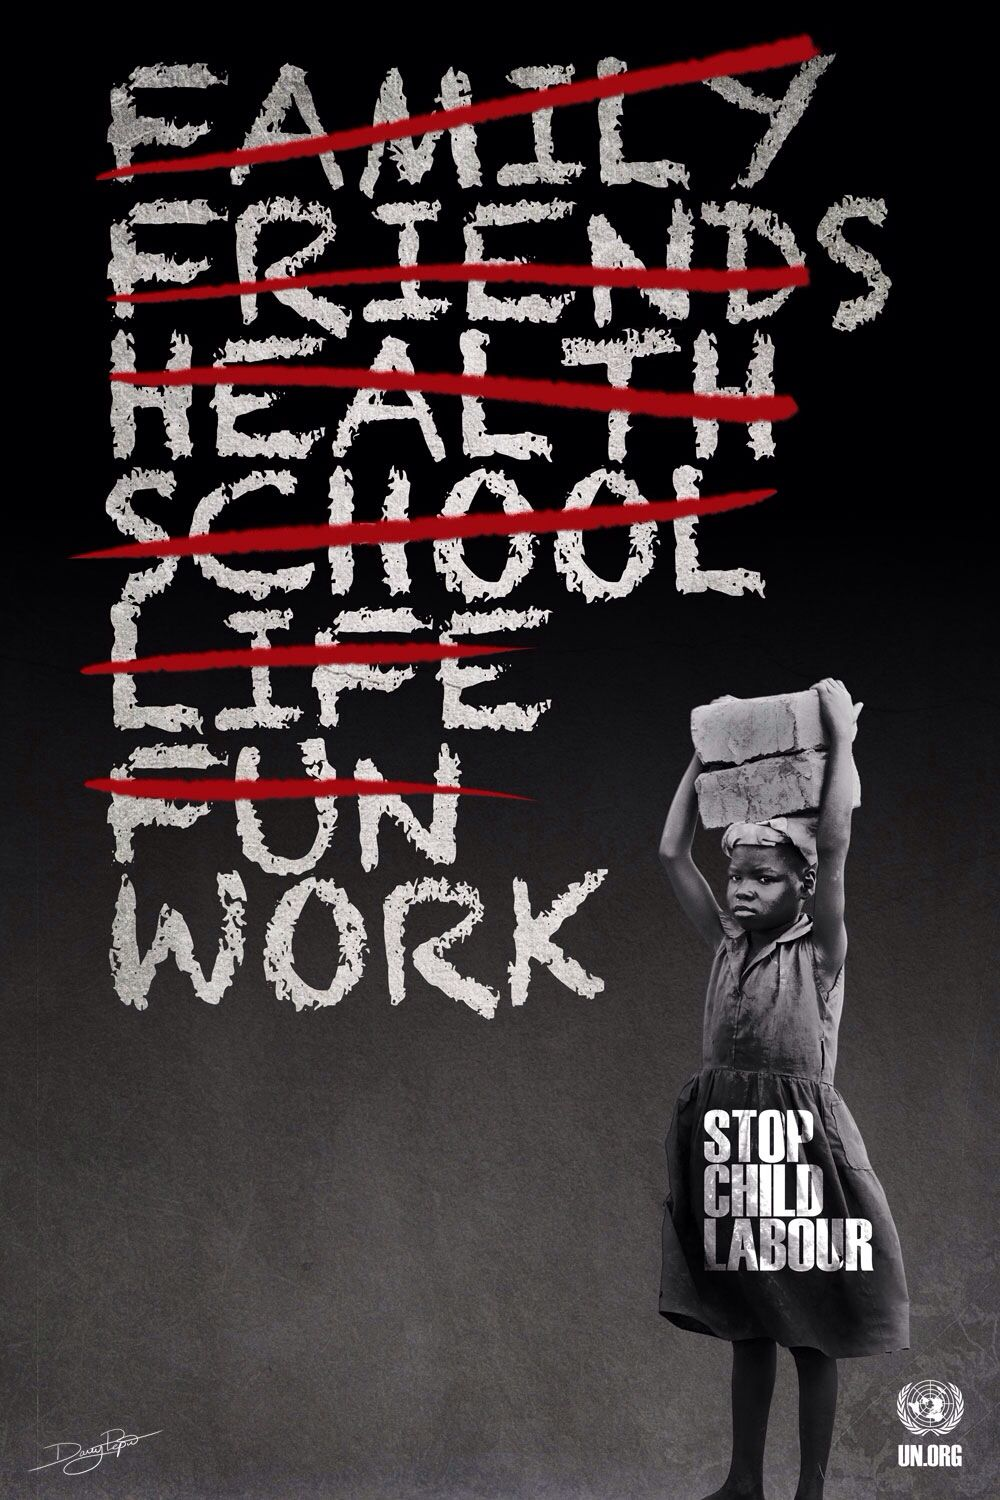 Children Are Forced Out Of School And Their Right To Education Is